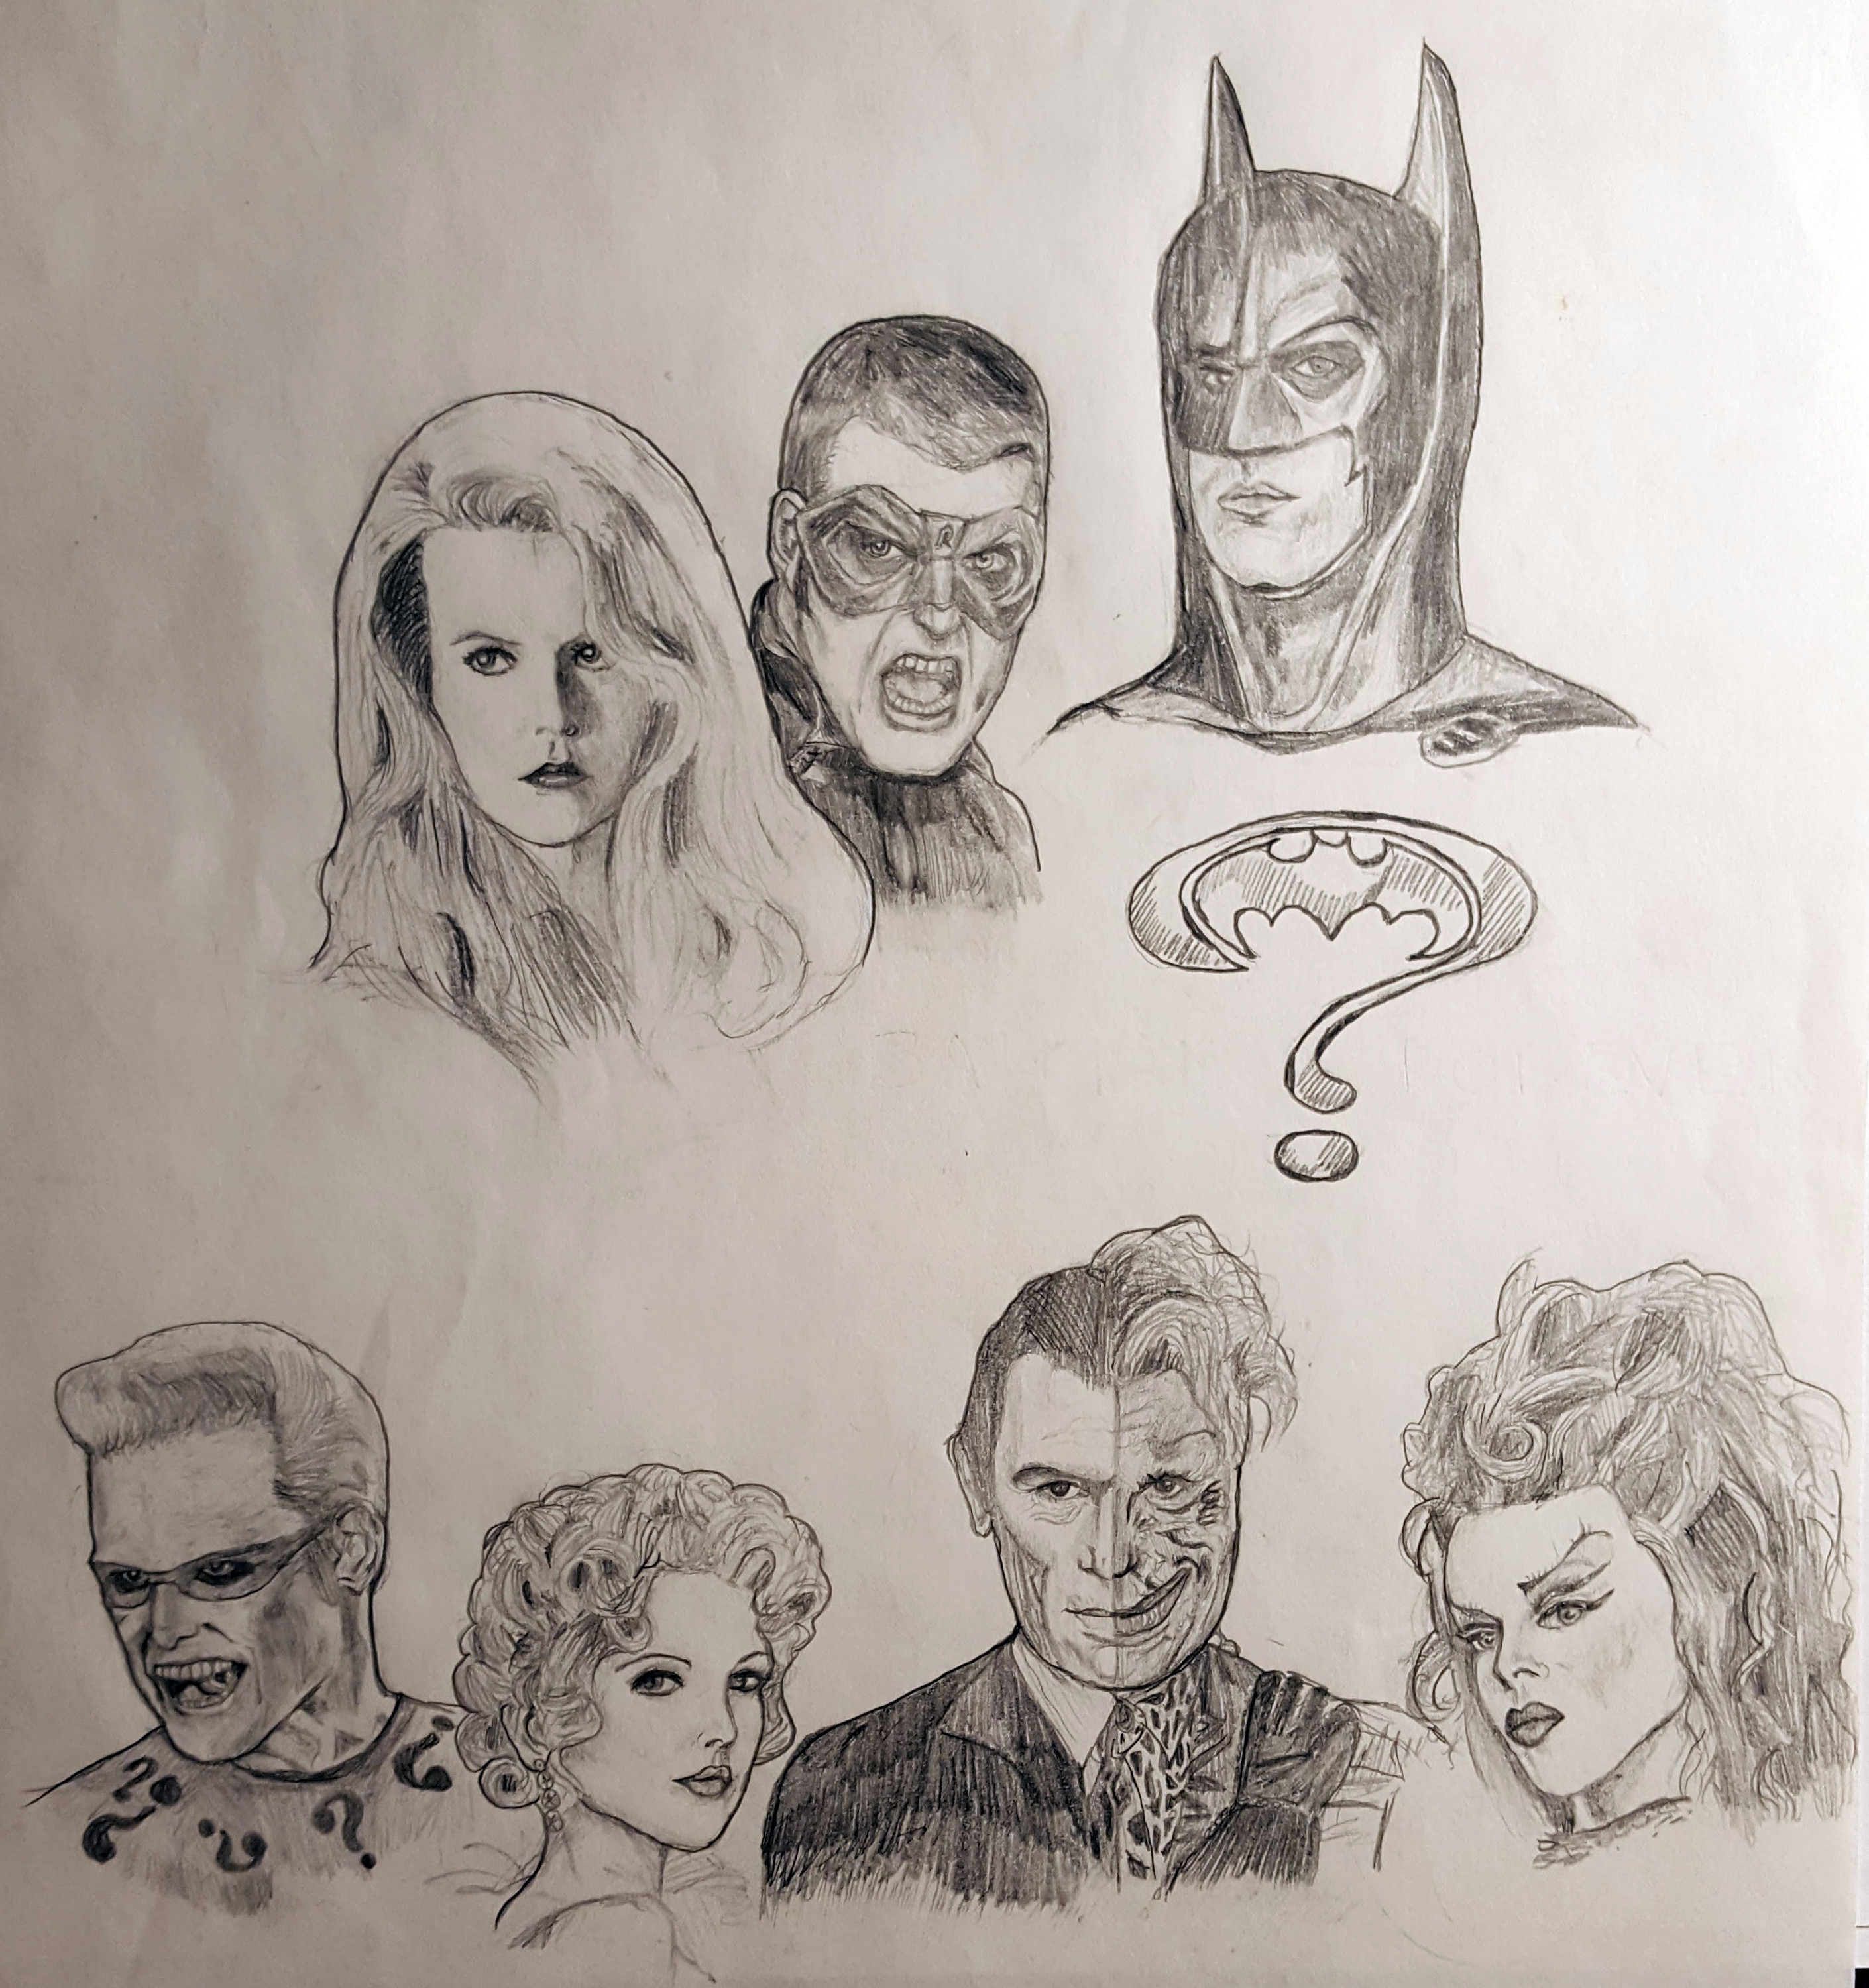 Batman Forever cast. To be fair, I drew this before I actually saw the movie.